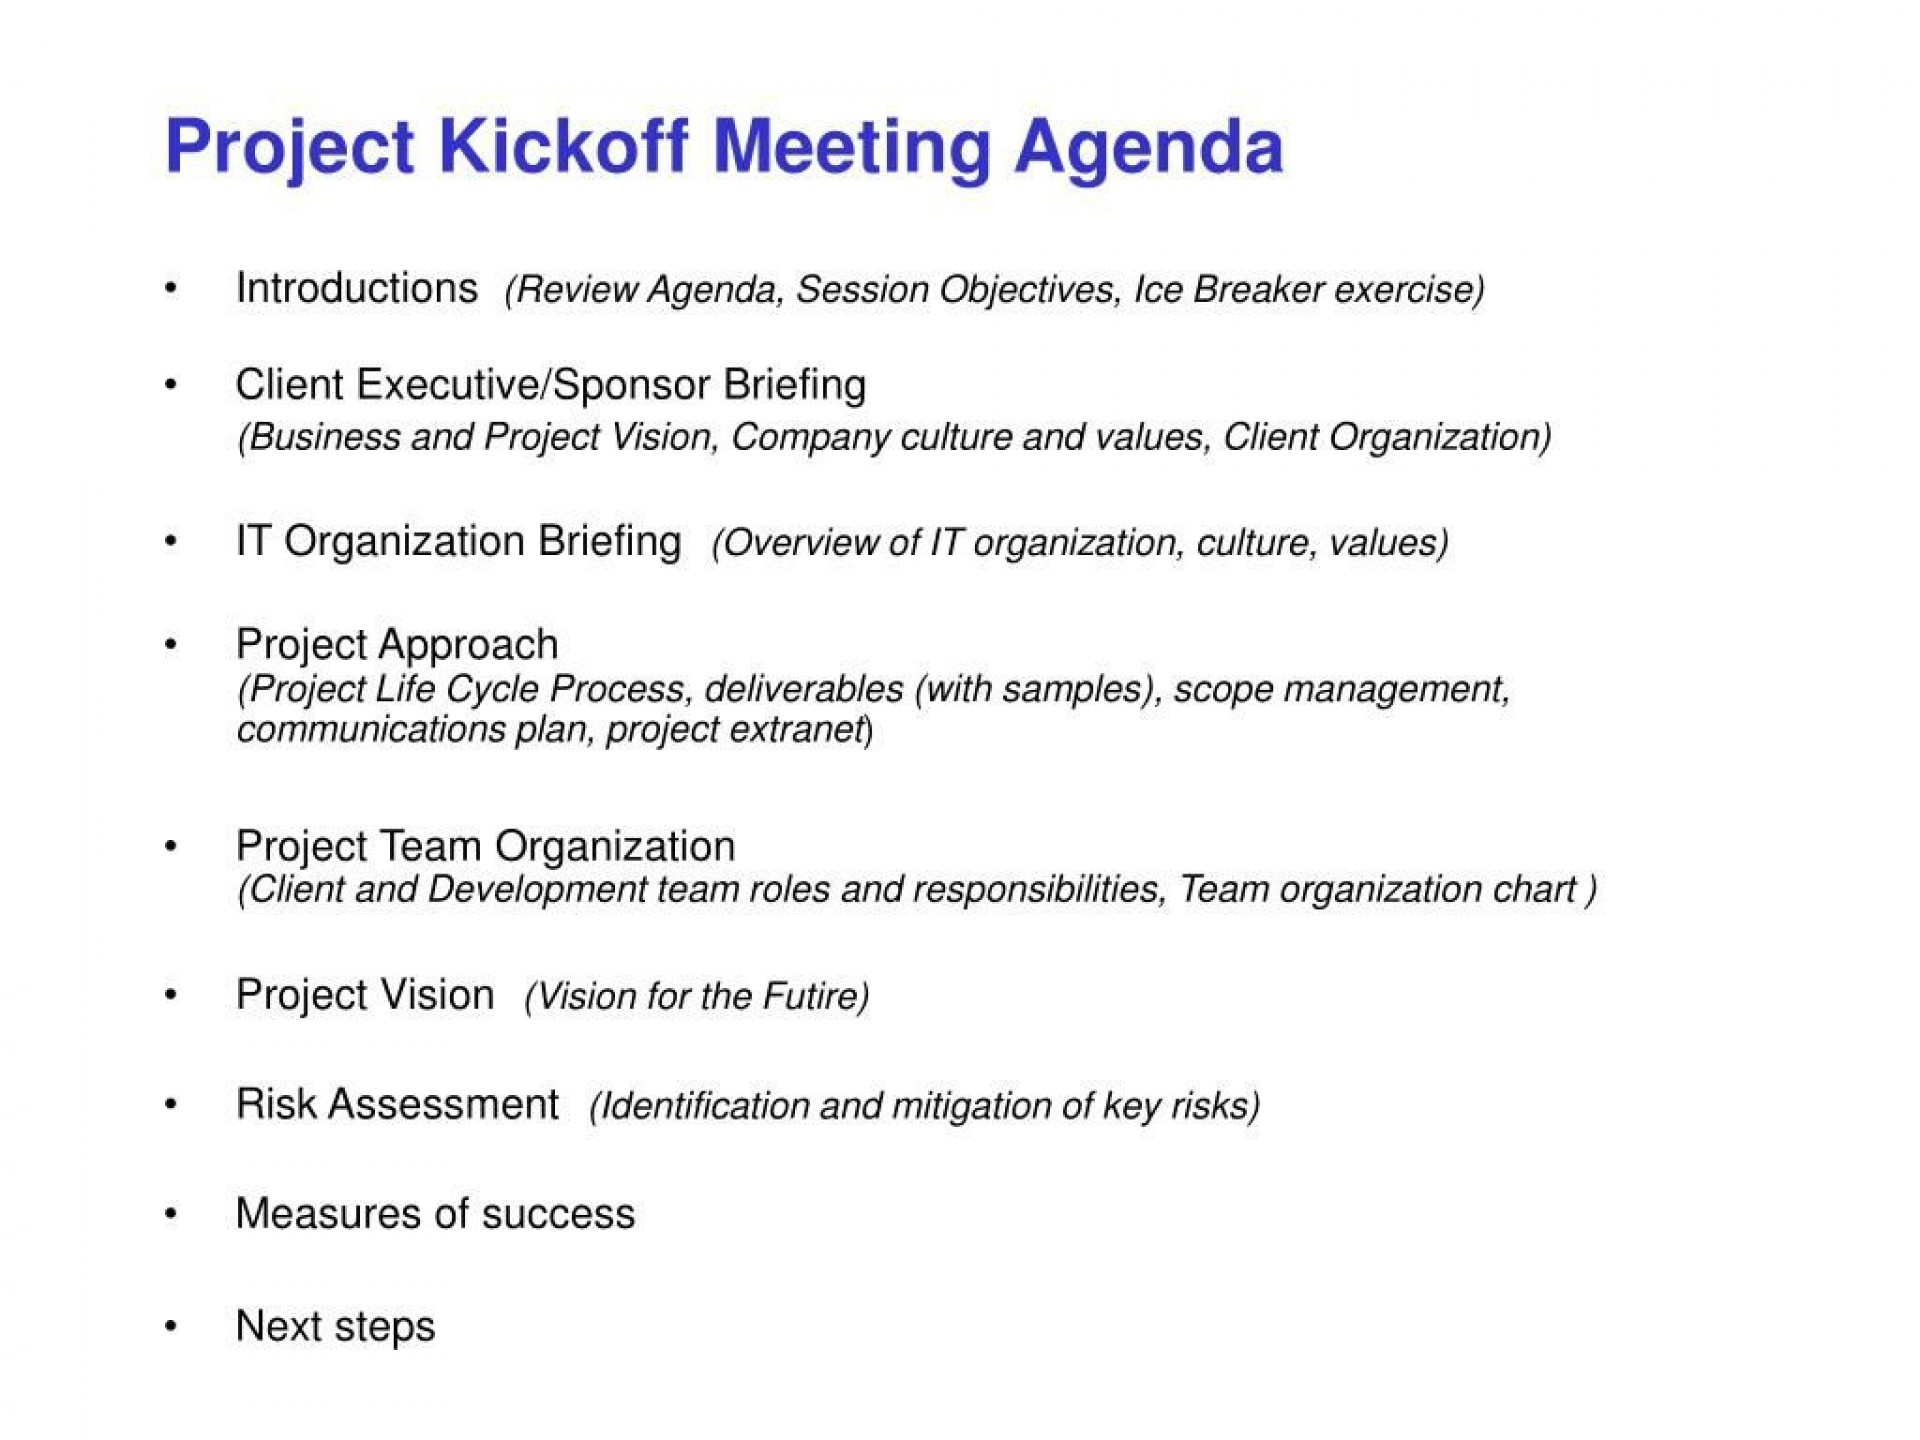 010 Impressive Project Team Kickoff Meeting Agenda Template Picture 1920